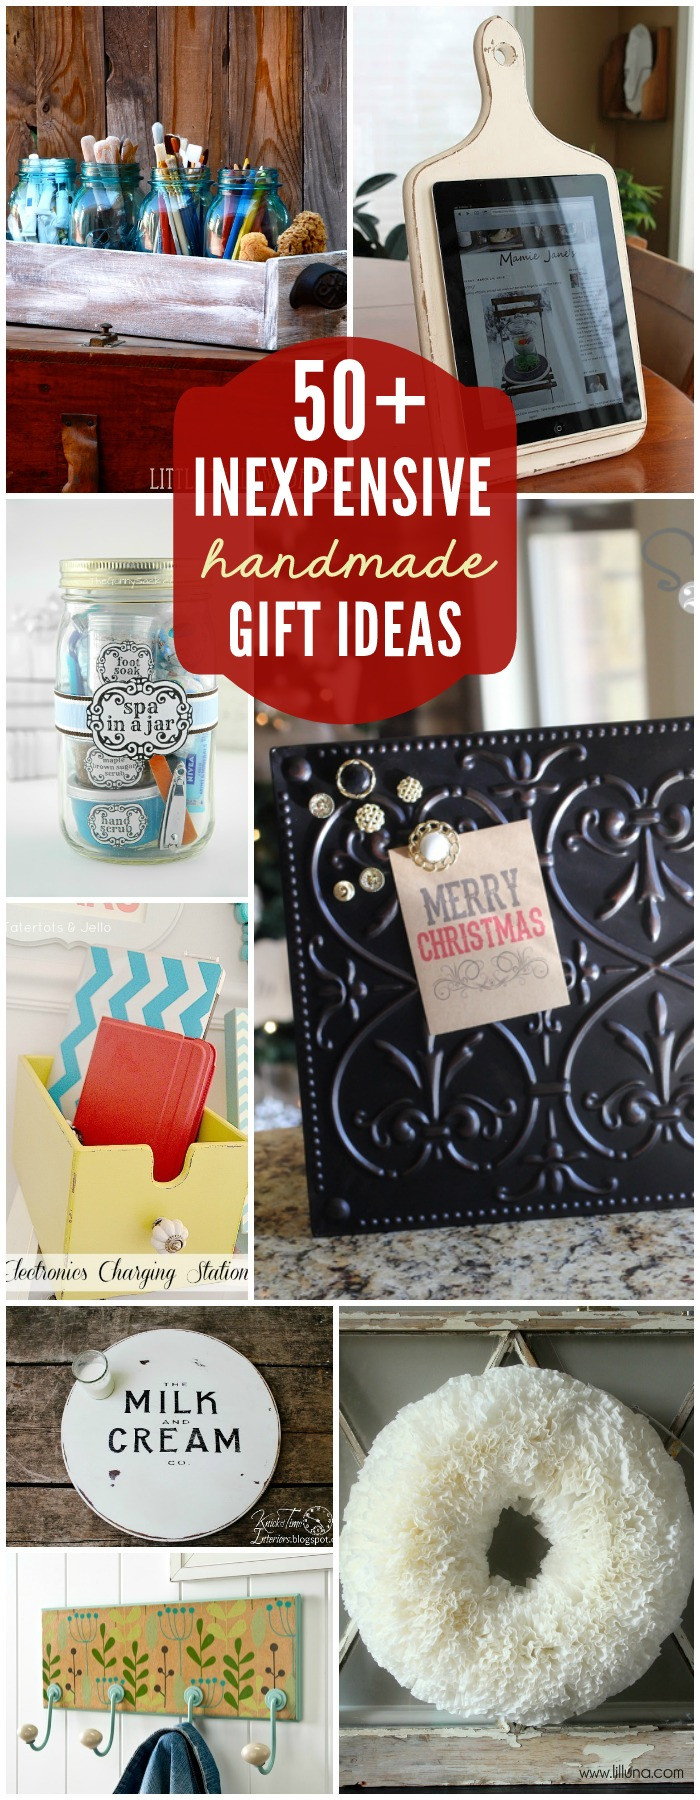 Best ideas about Cheap Holiday Gift Ideas . Save or Pin Inexpensive Birthday Gift Ideas Now.